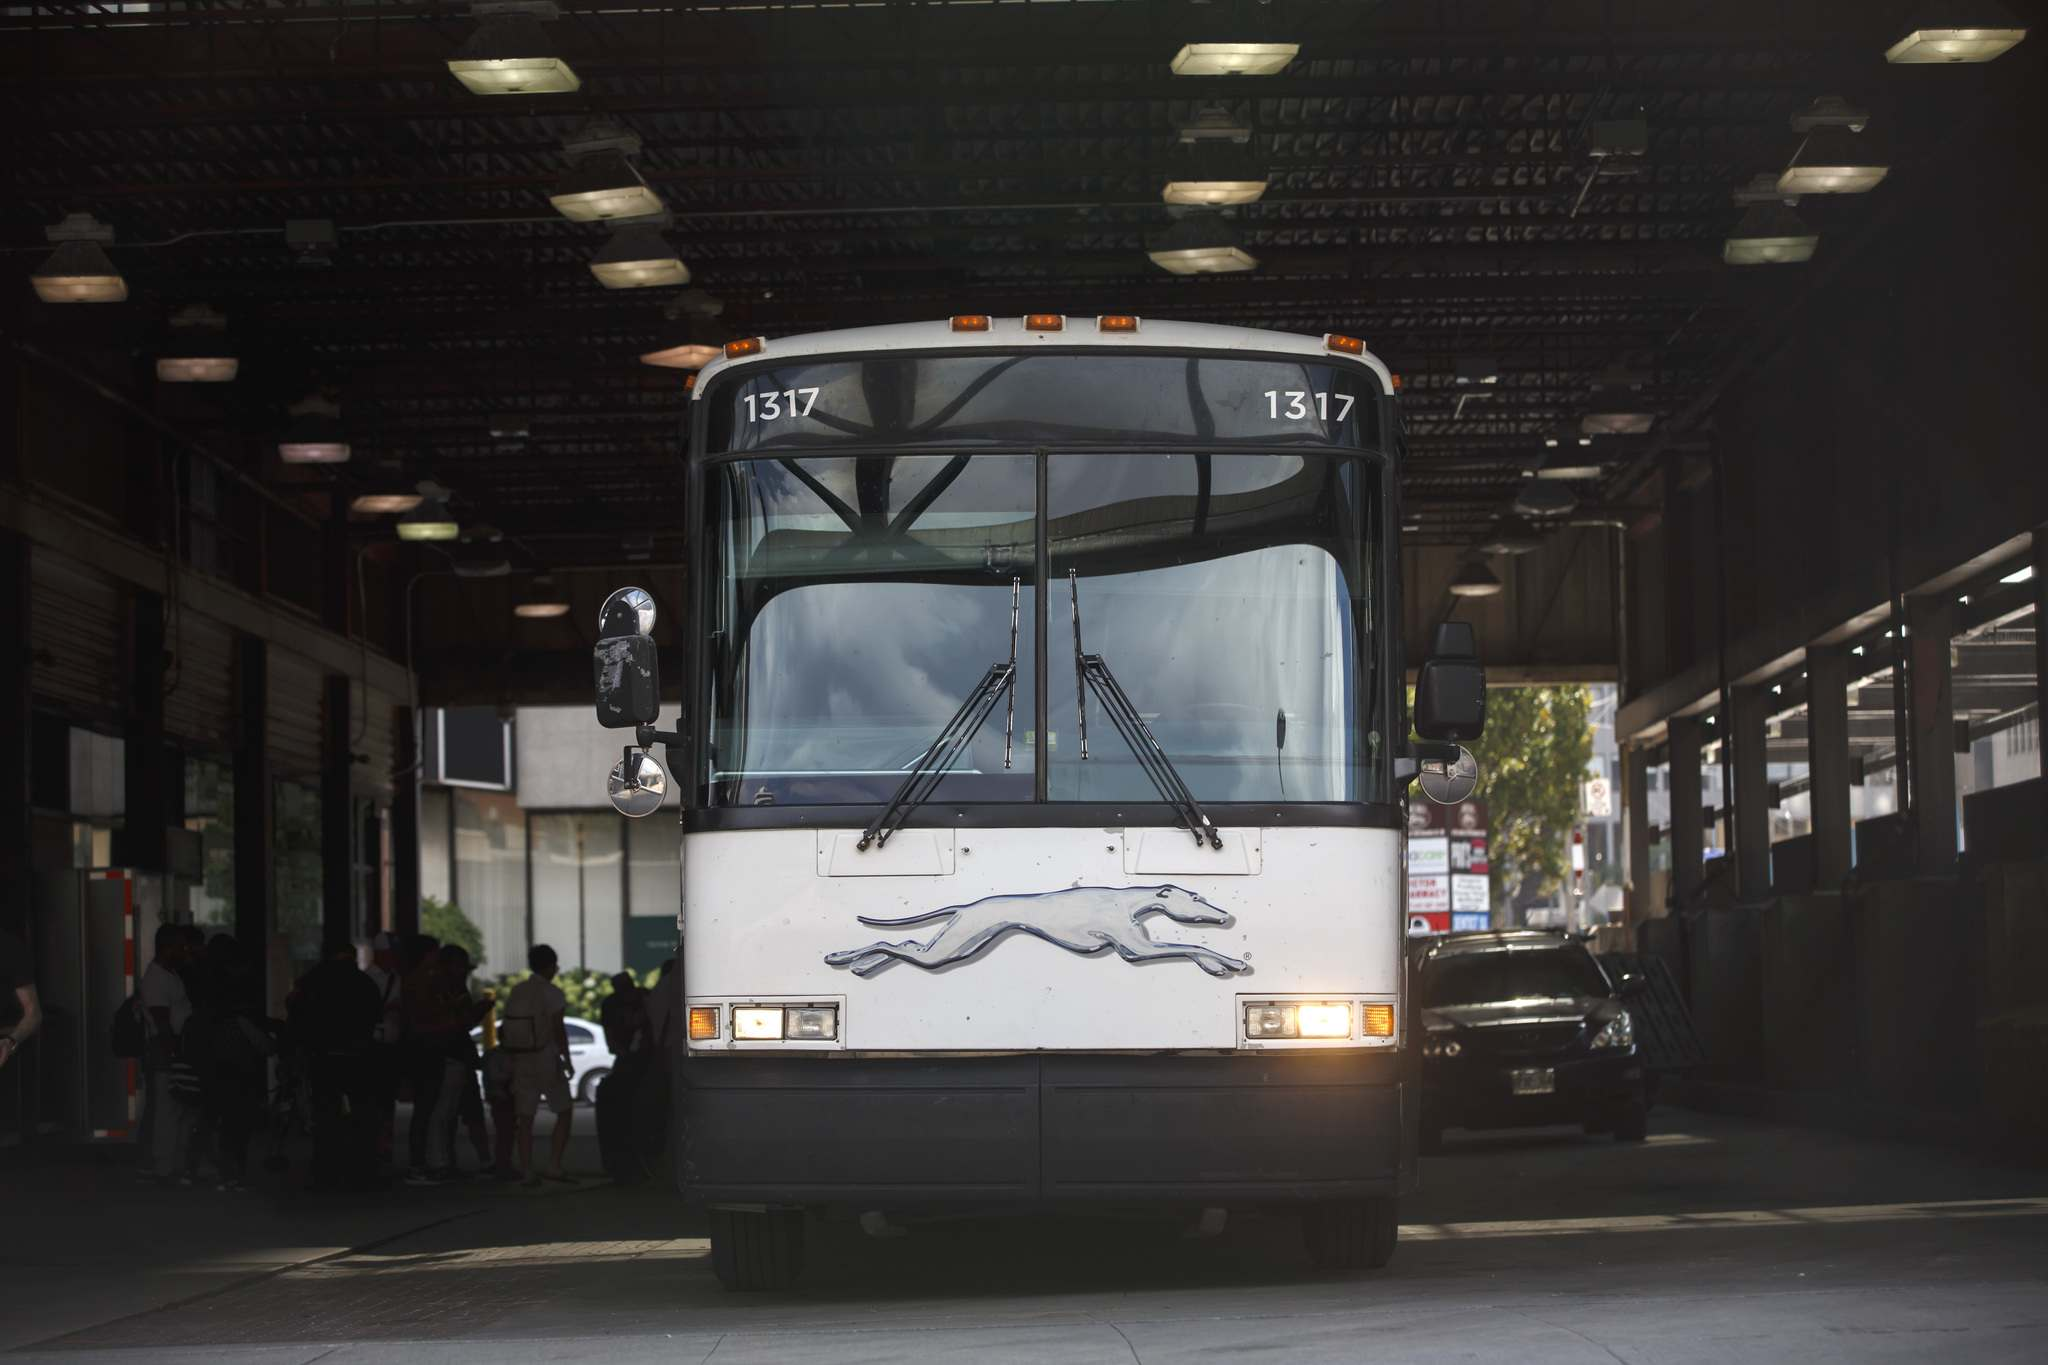 Some rural areas in the U.S. were able to get their bus service back thanks to a program called Formula Grants for Rural Areas, a cost-sharing service between the U.S. federal government and the individual states using the bus routes.